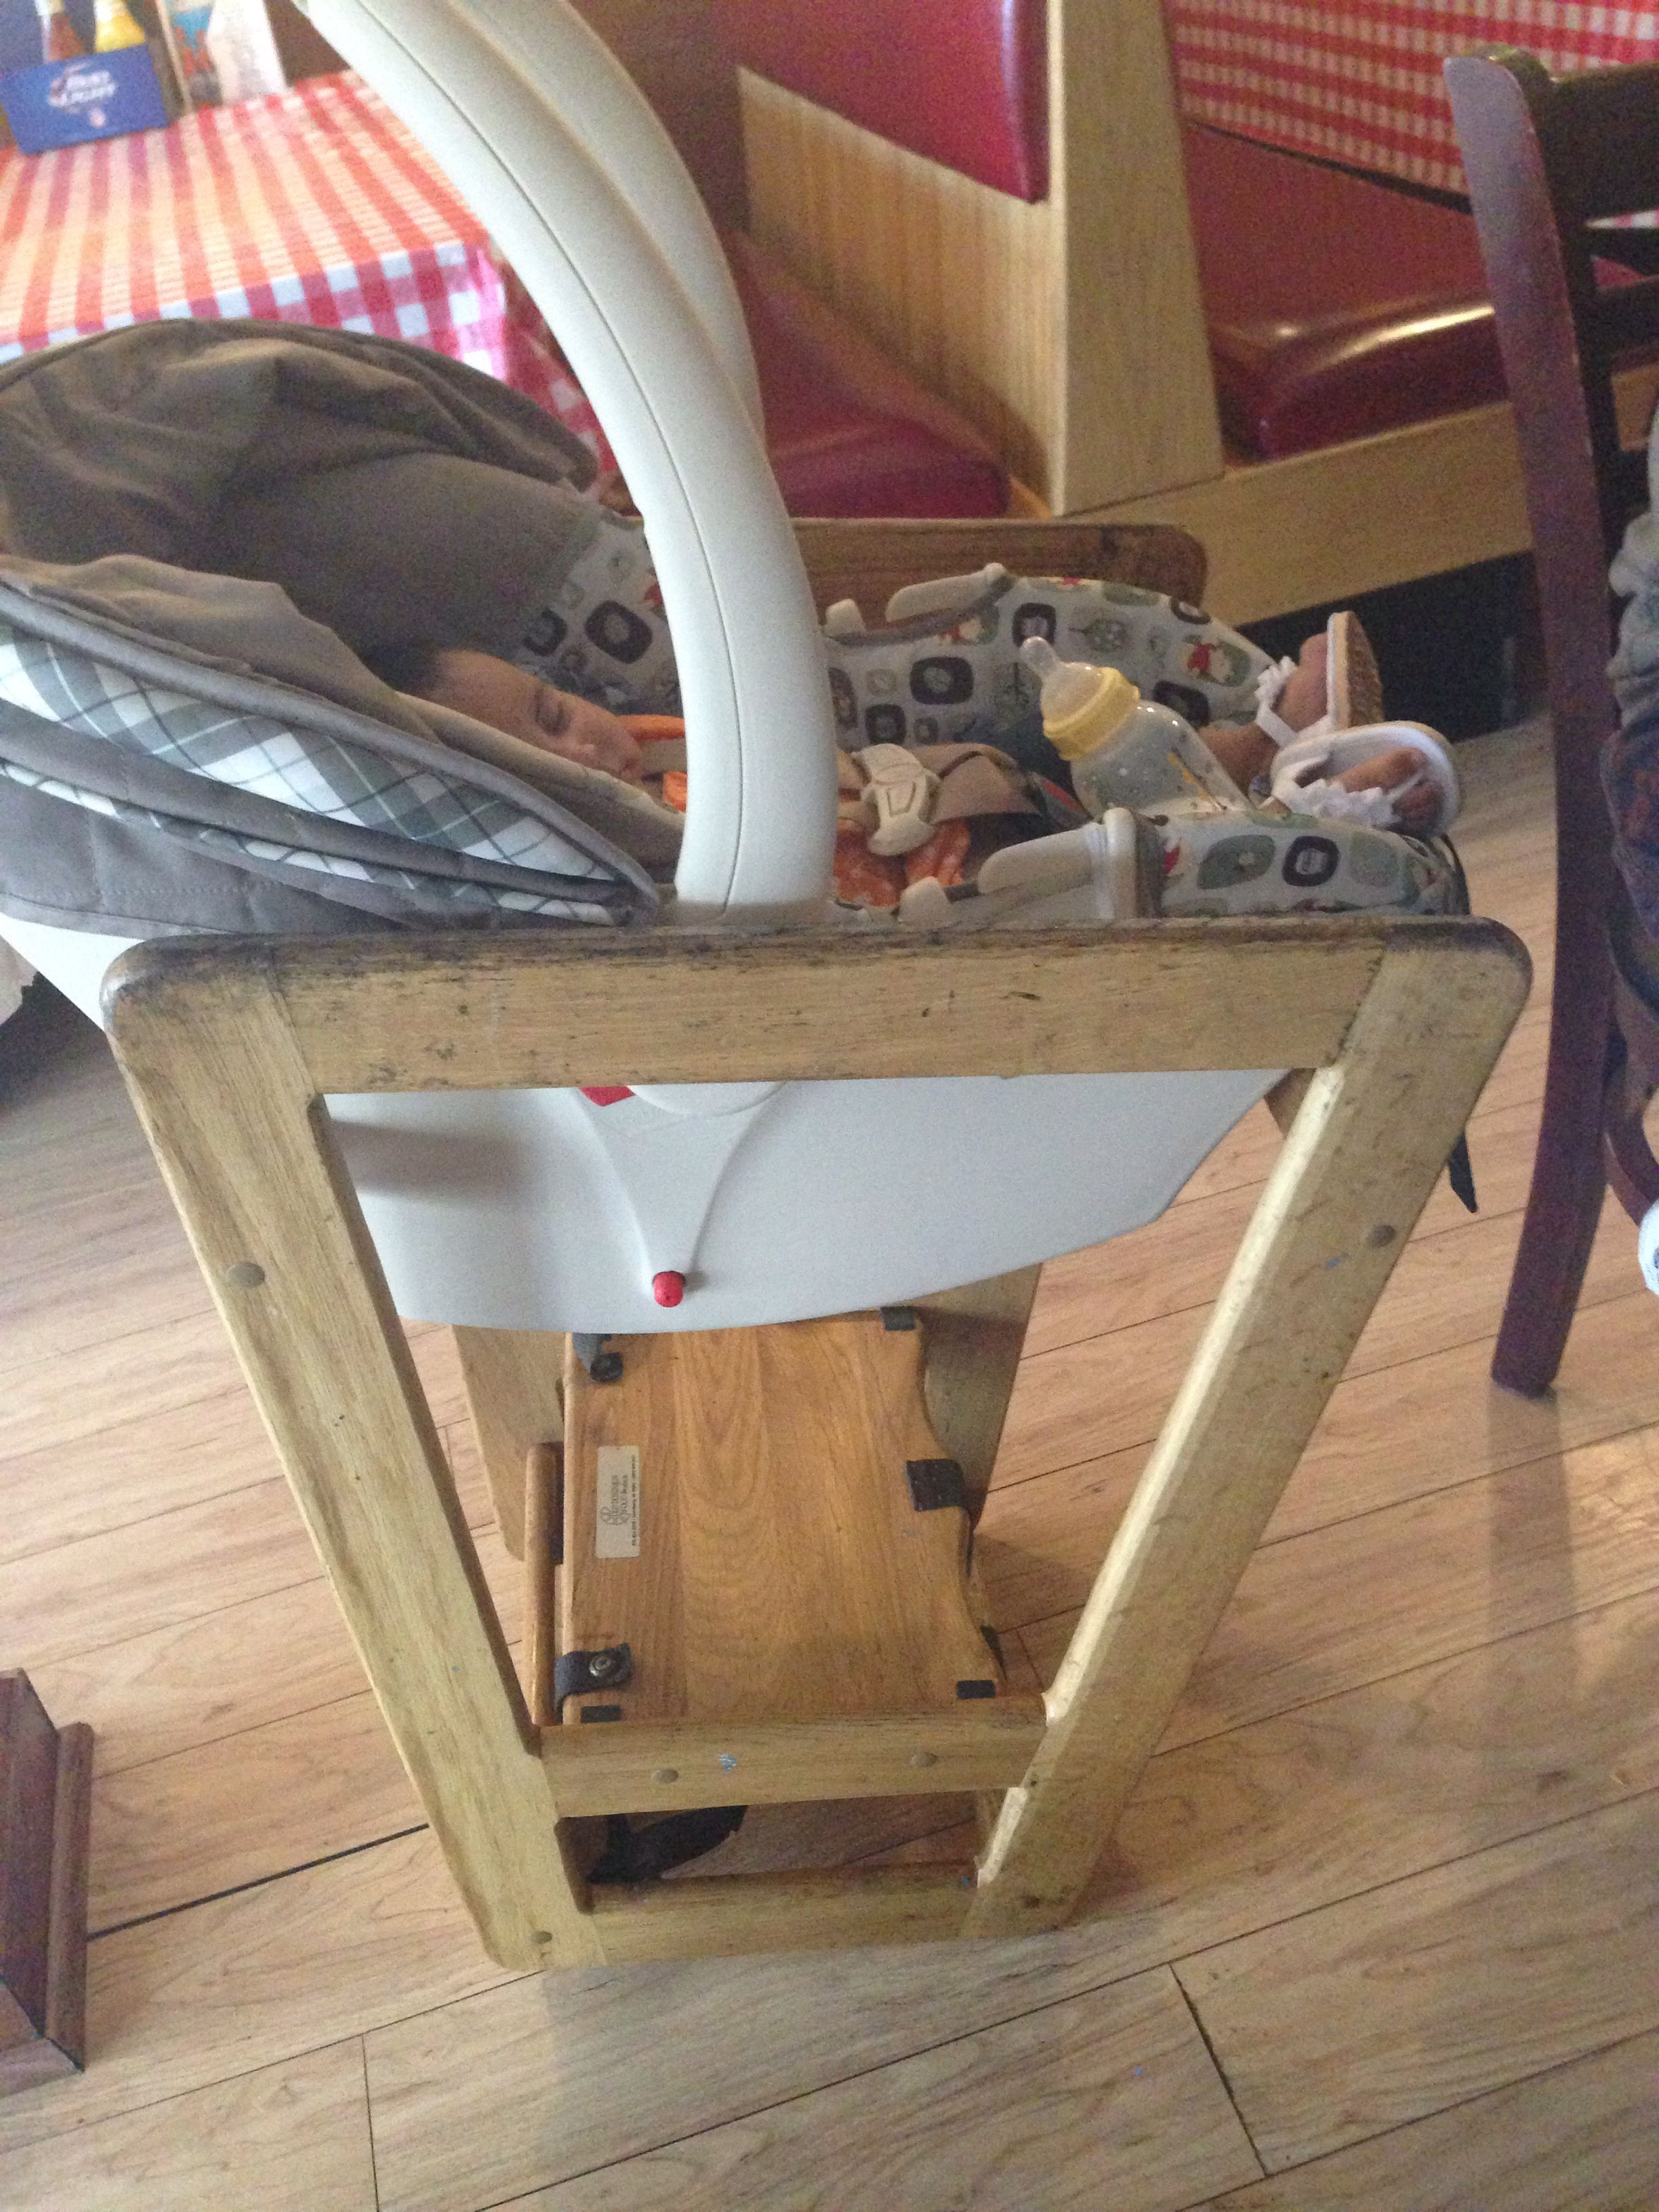 Turn The Restaurant High Chair Upside Down To Fit A Car Seat High Chair Chair Car Seats